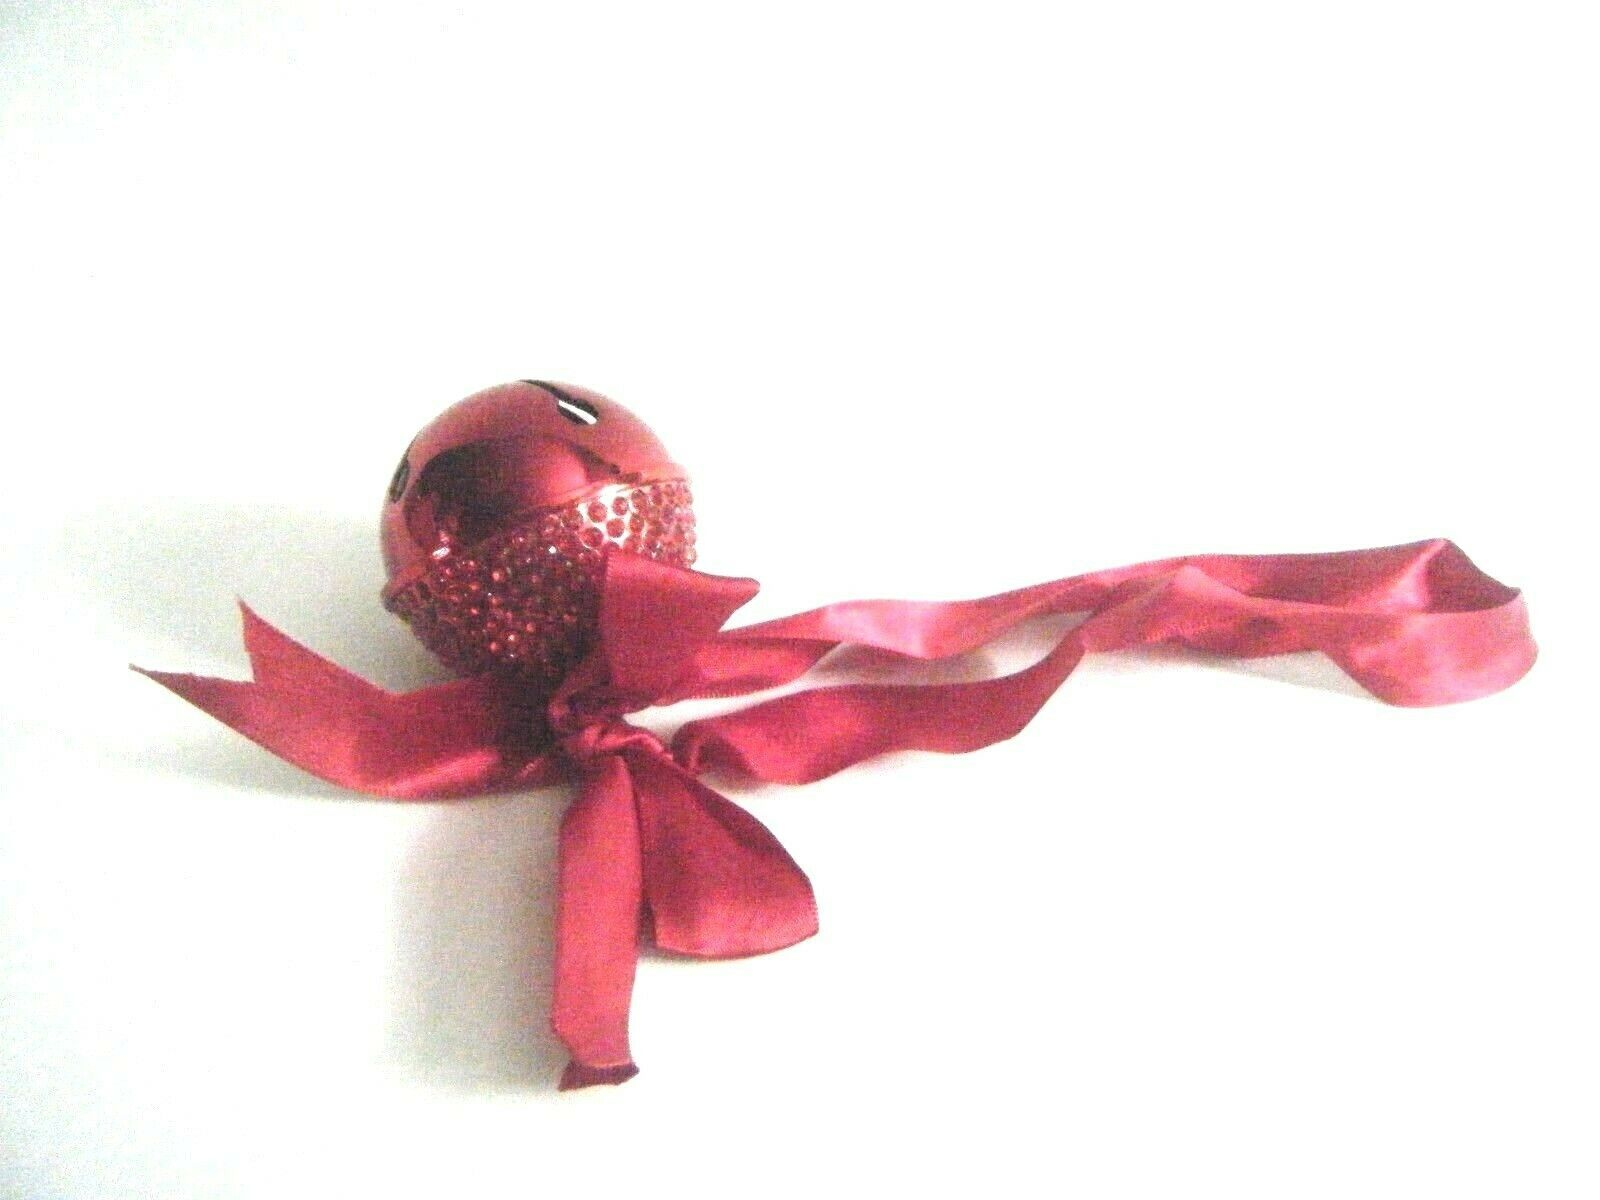 Red Jeweled Blingle Jingle Bell Christmas Ornament New In Gift Box